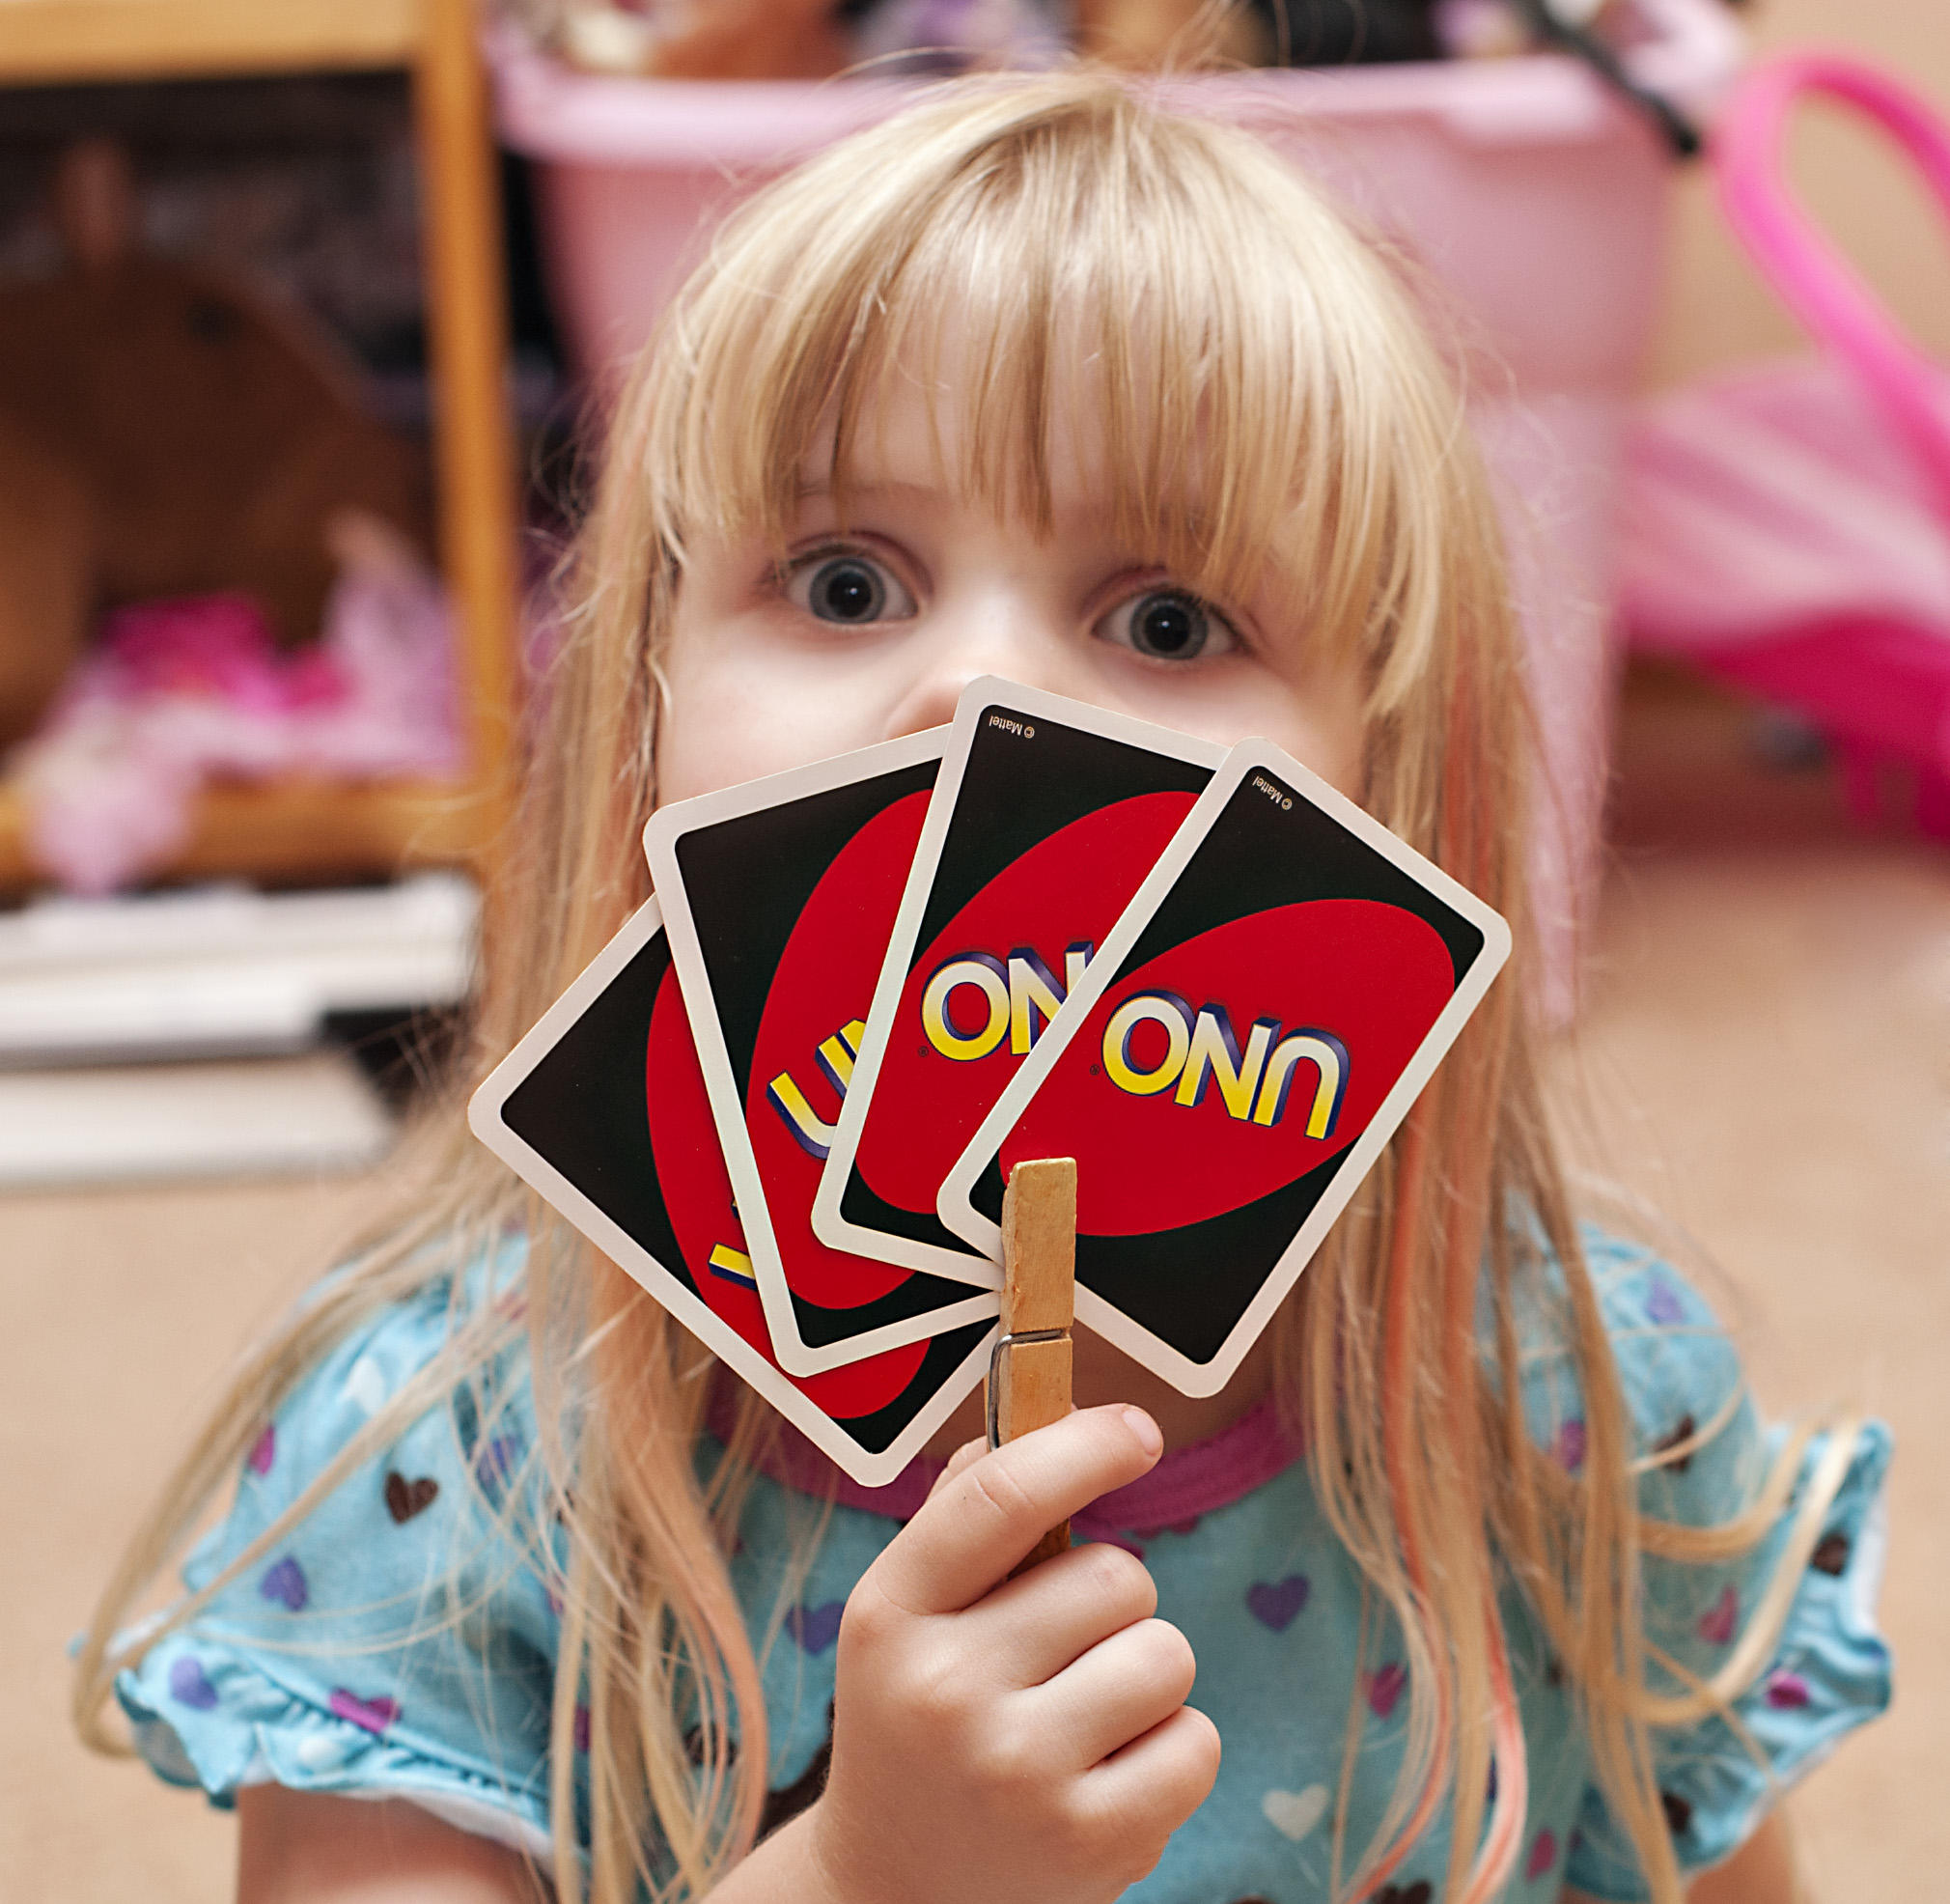 Childrens Card Games